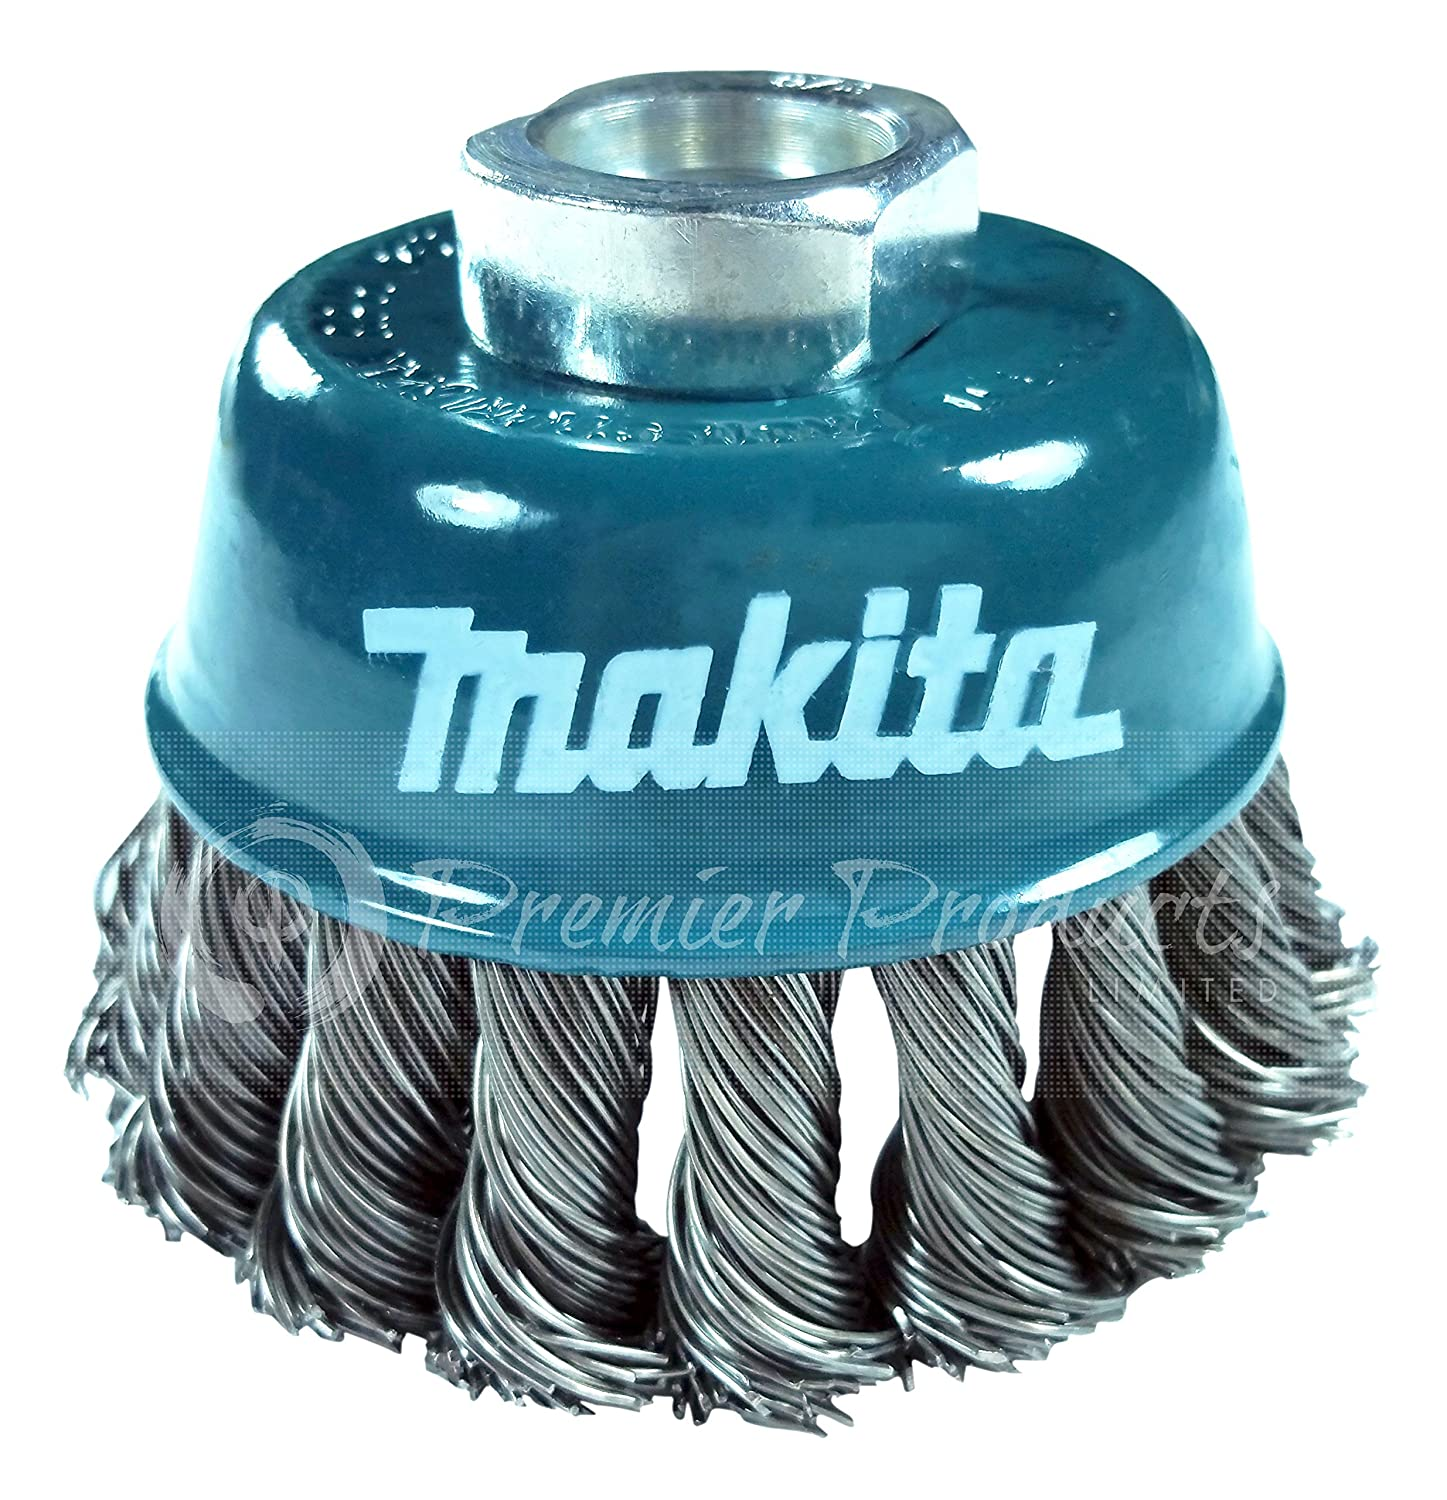 Makita 1 Piece - 3 Inch Knotted Wire Cup Brush For Grinders - Heavy-Duty Conditioning For Metal - 3' x 5/8-Inch | 11 UNC D-55192